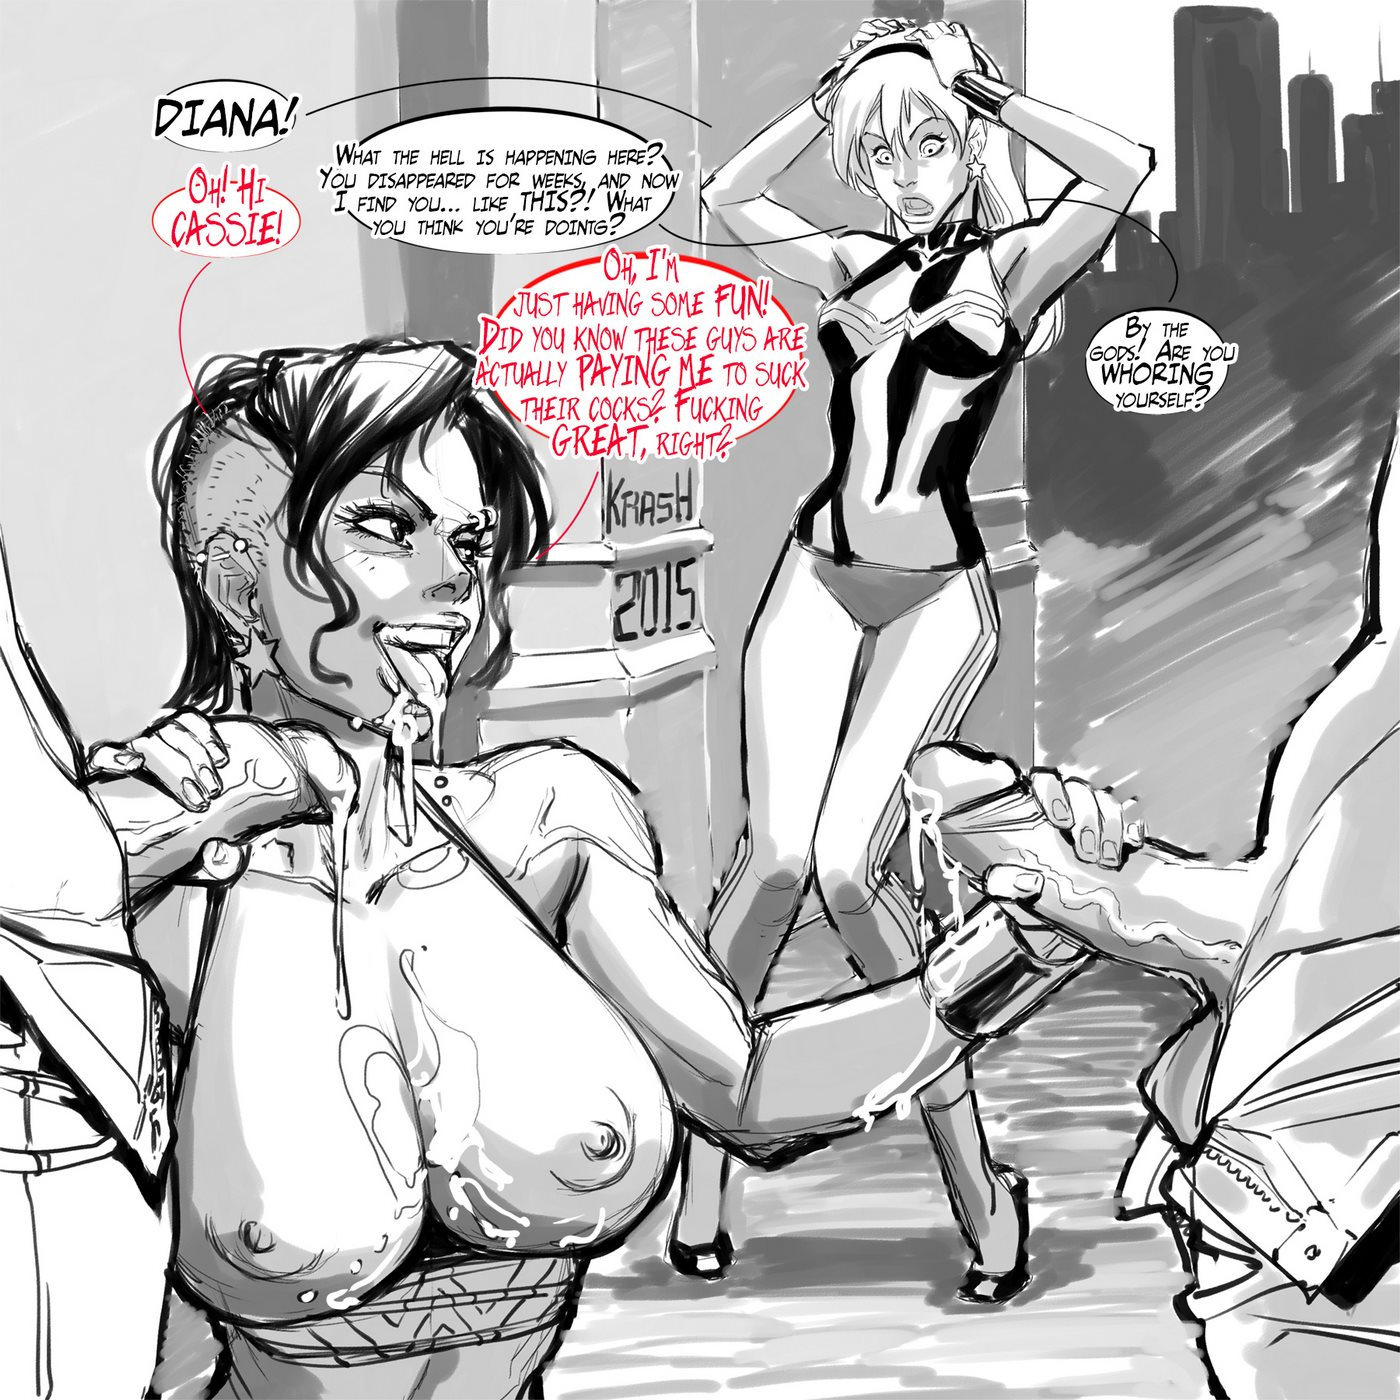 Krash- Wonder Whores porn comics 8 muses